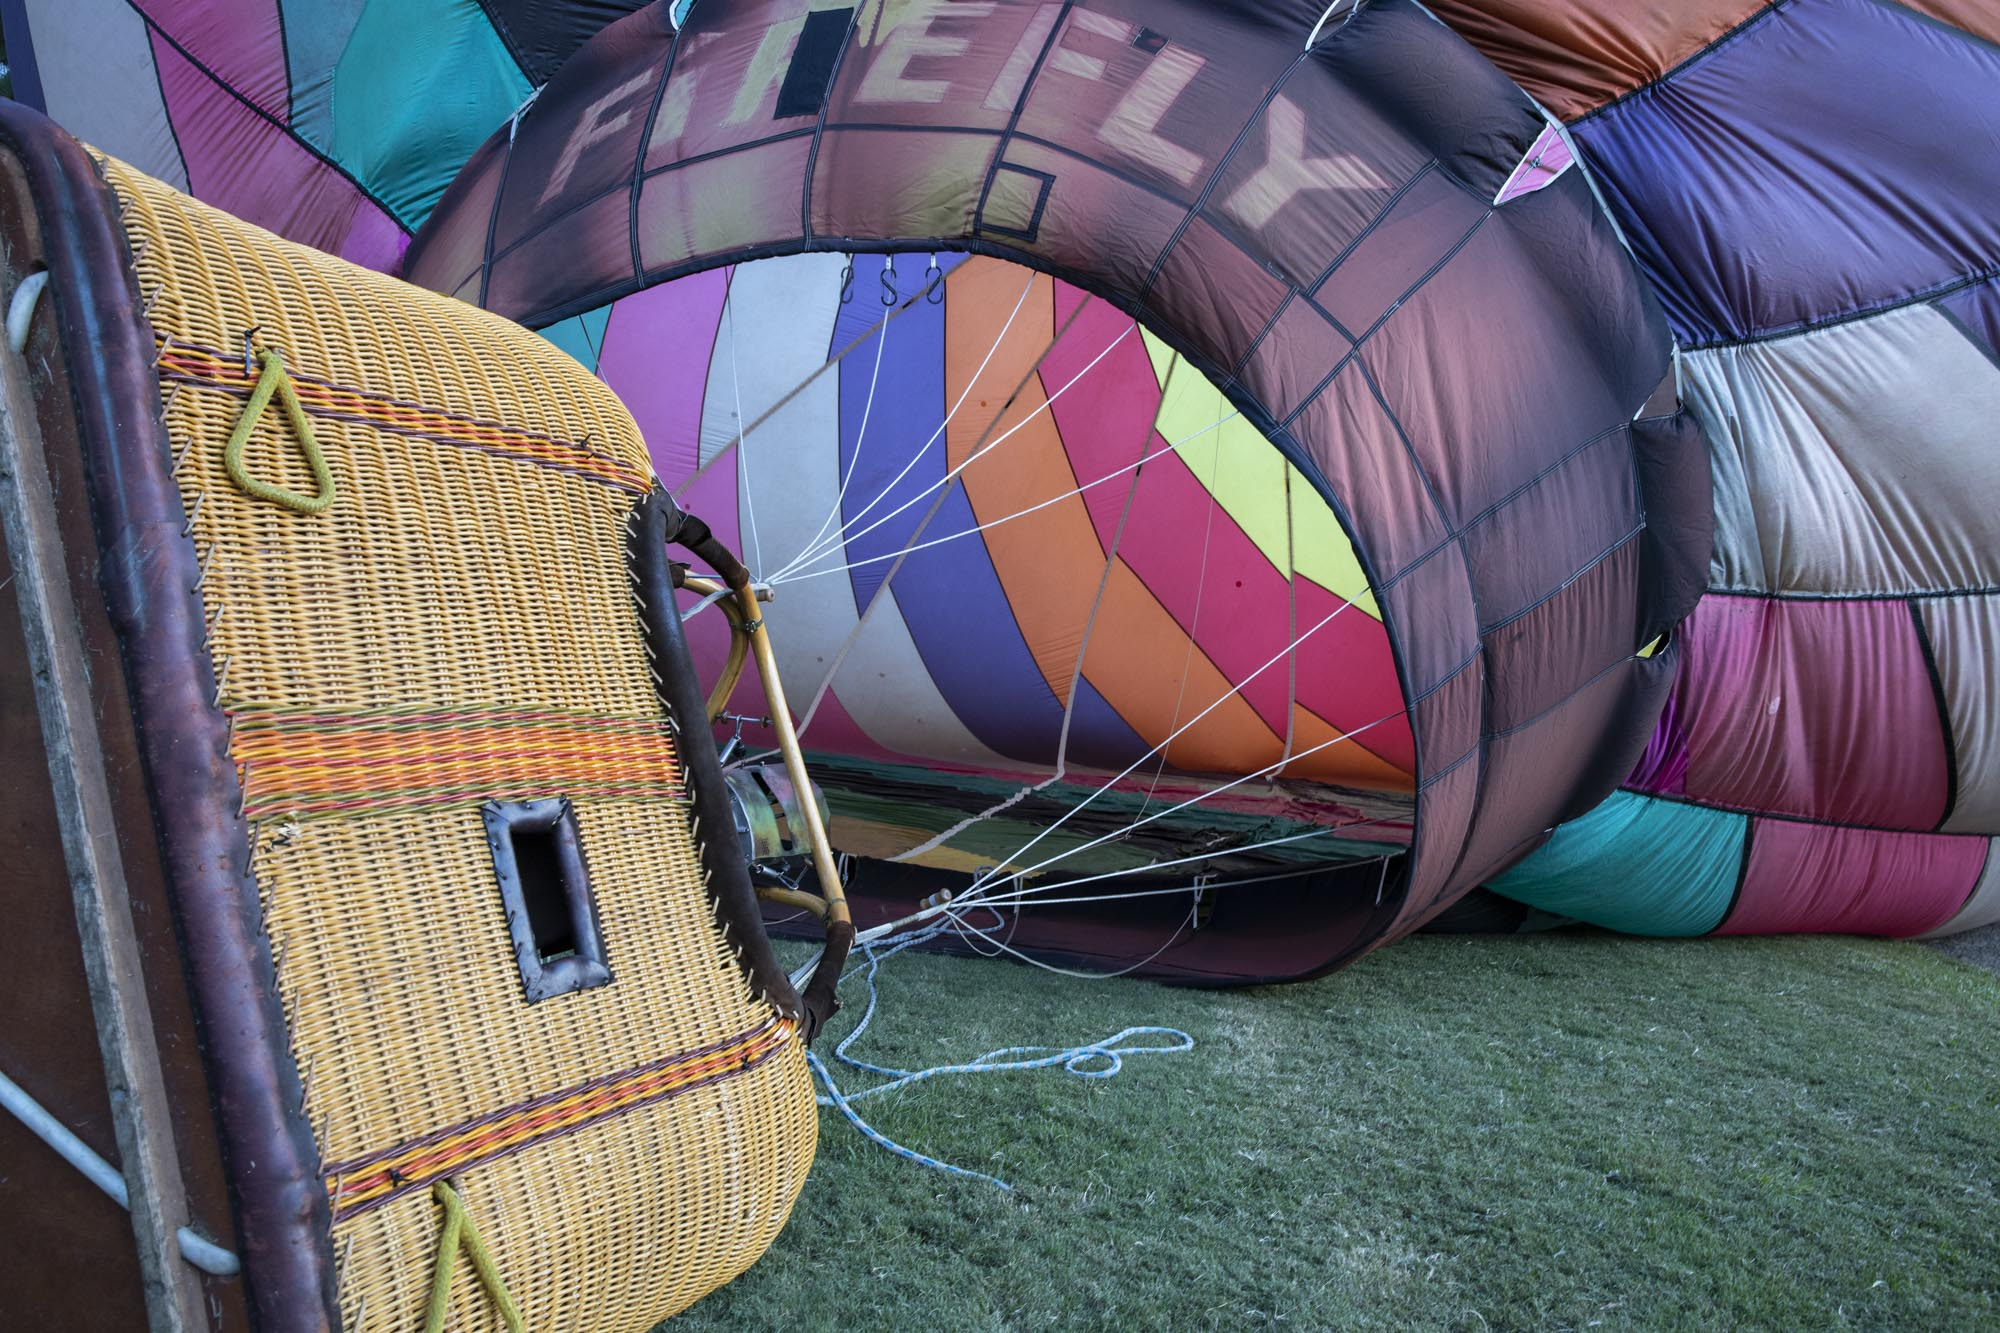 The basket and balloon laying on the ground nearly ready for filling with hot air from the burner.